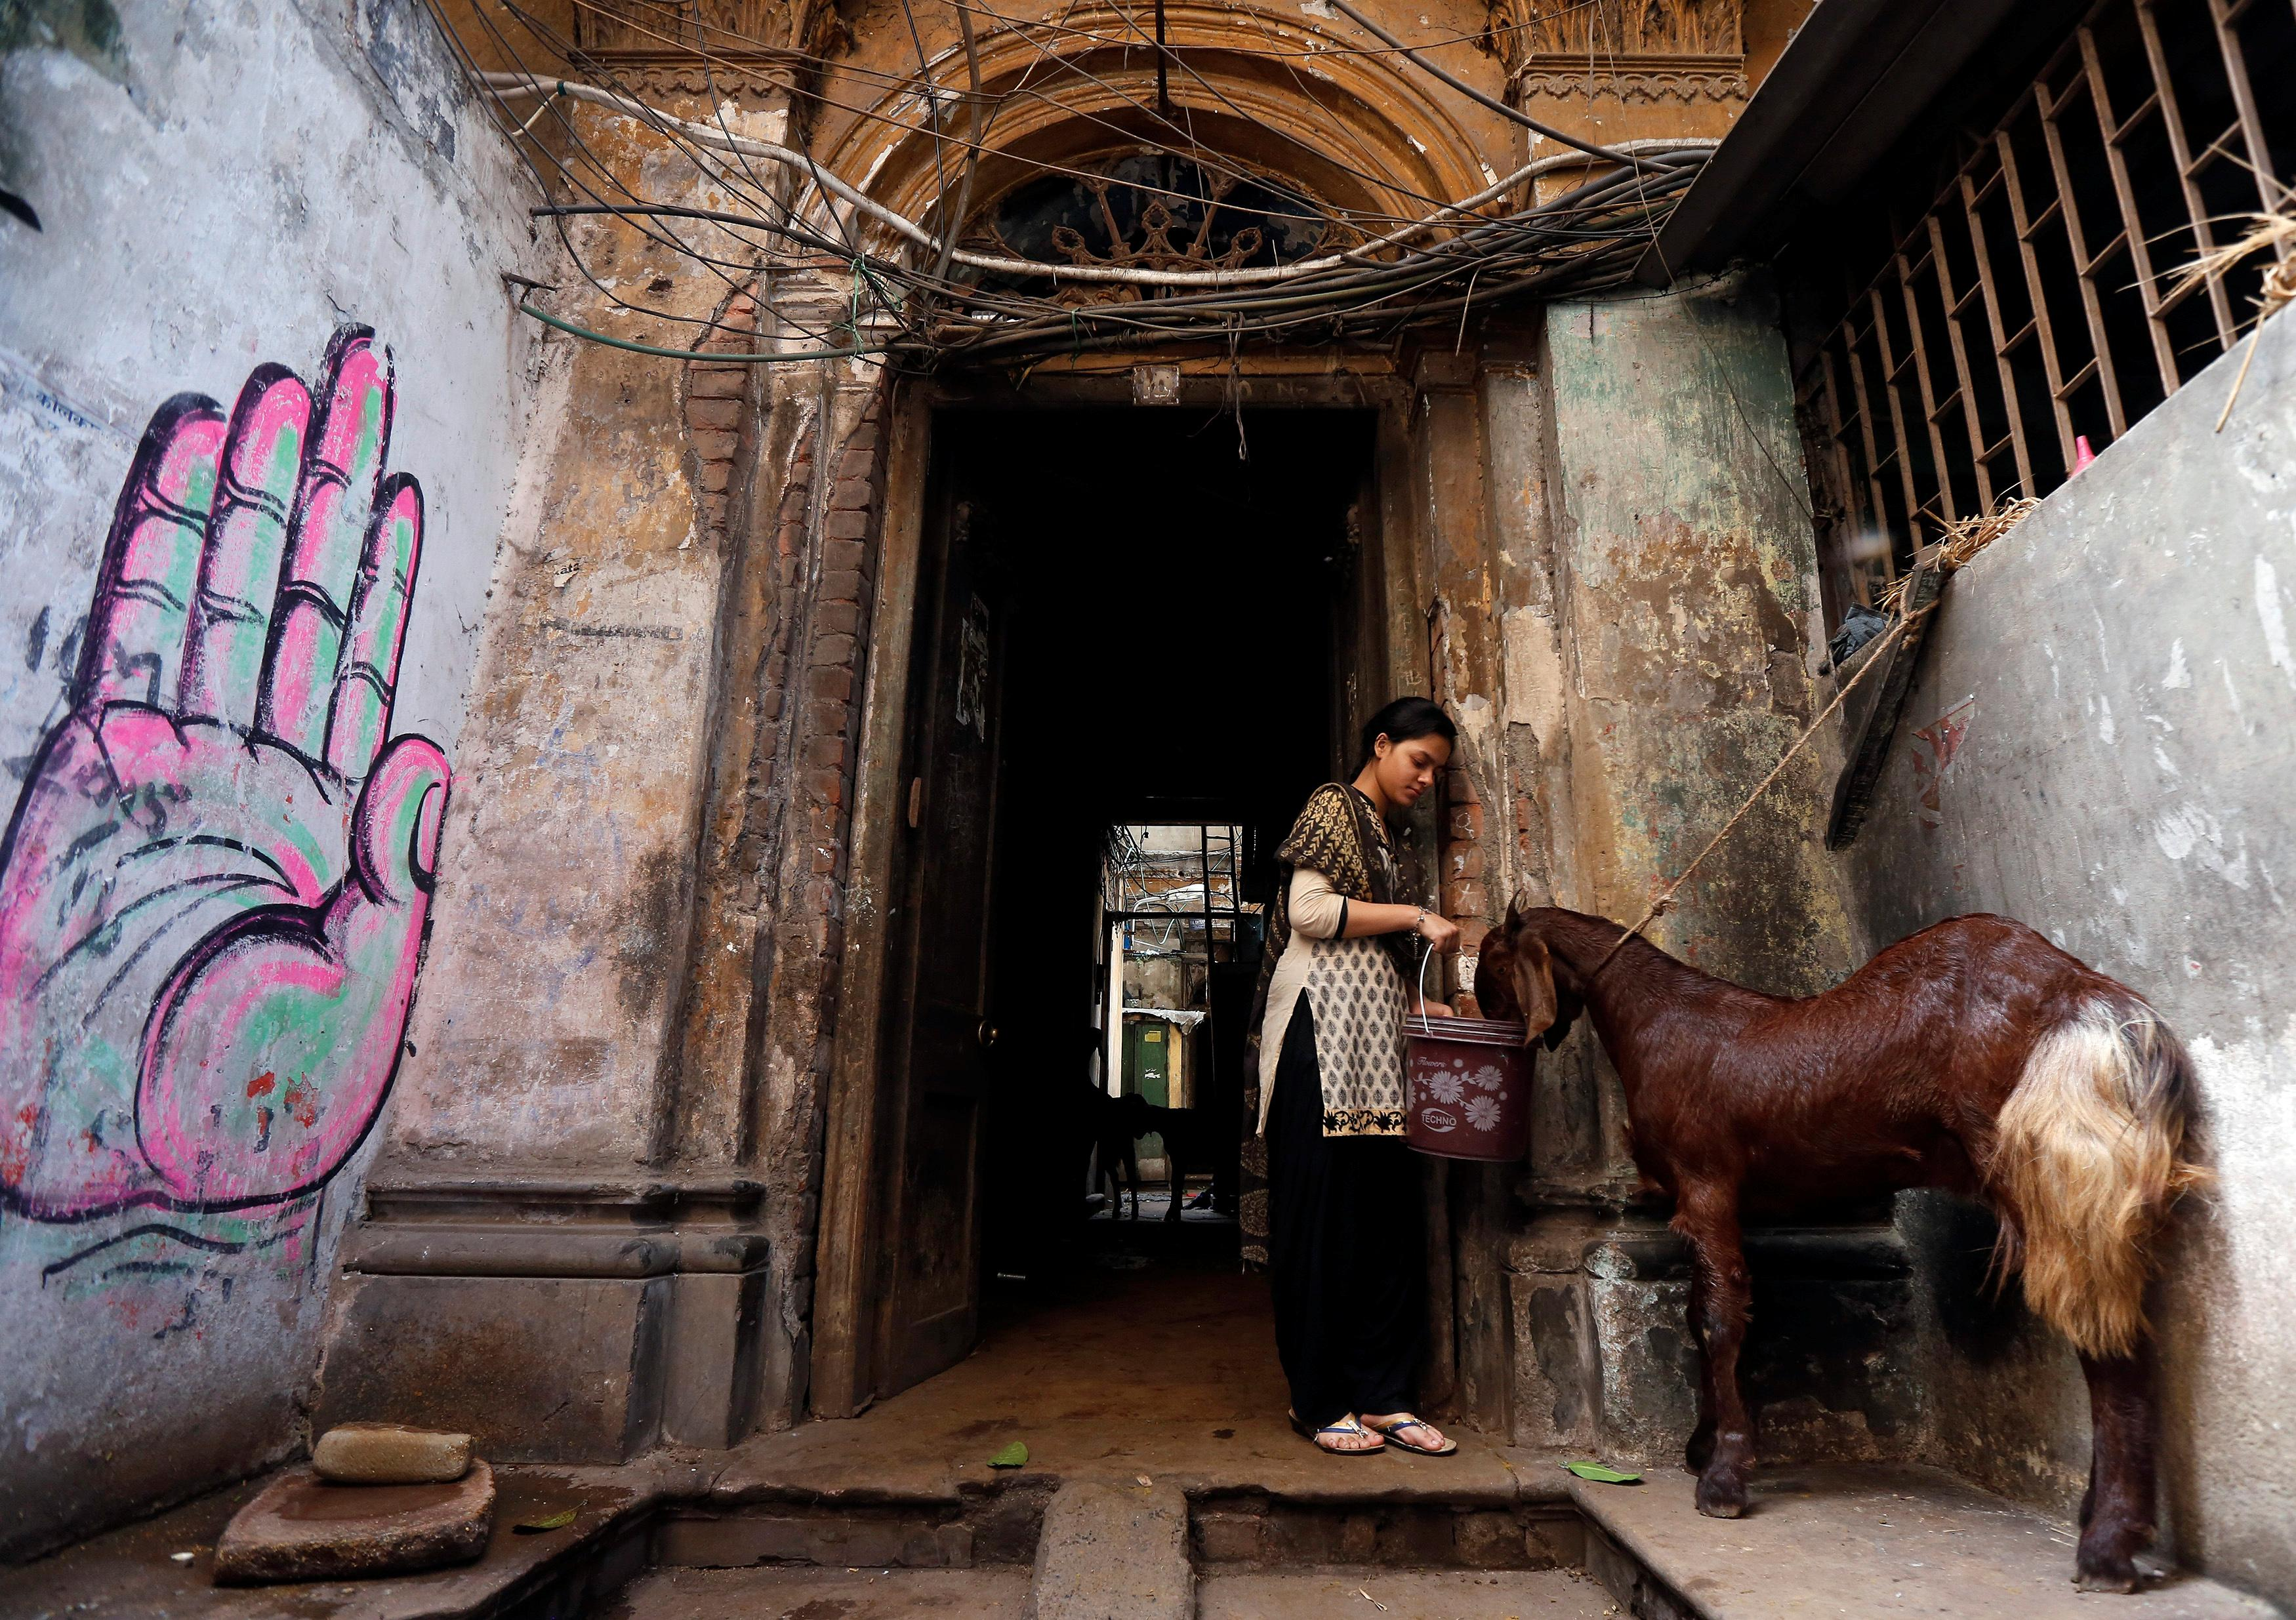 A woman gives water to a goat at her house after purchasing it at a livestock market on the eve of the Eid al-Adha festival in Kolkata, India Sept. 12, 2016. Photo: REUTERS/Rupak De Chowdhuri